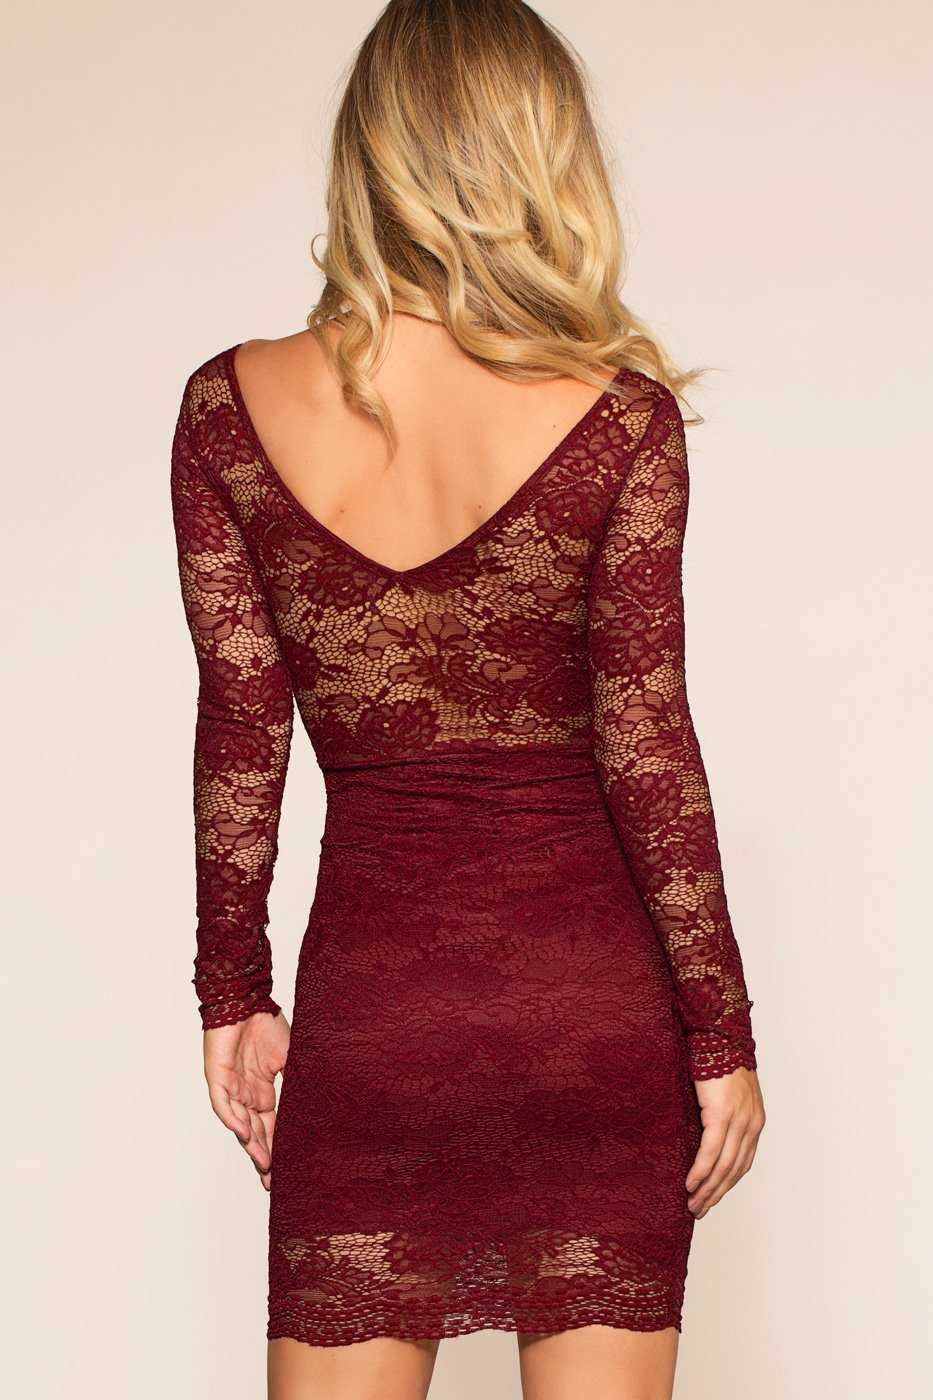 Dresses - Under The Mistletoe Dress - Burgundy